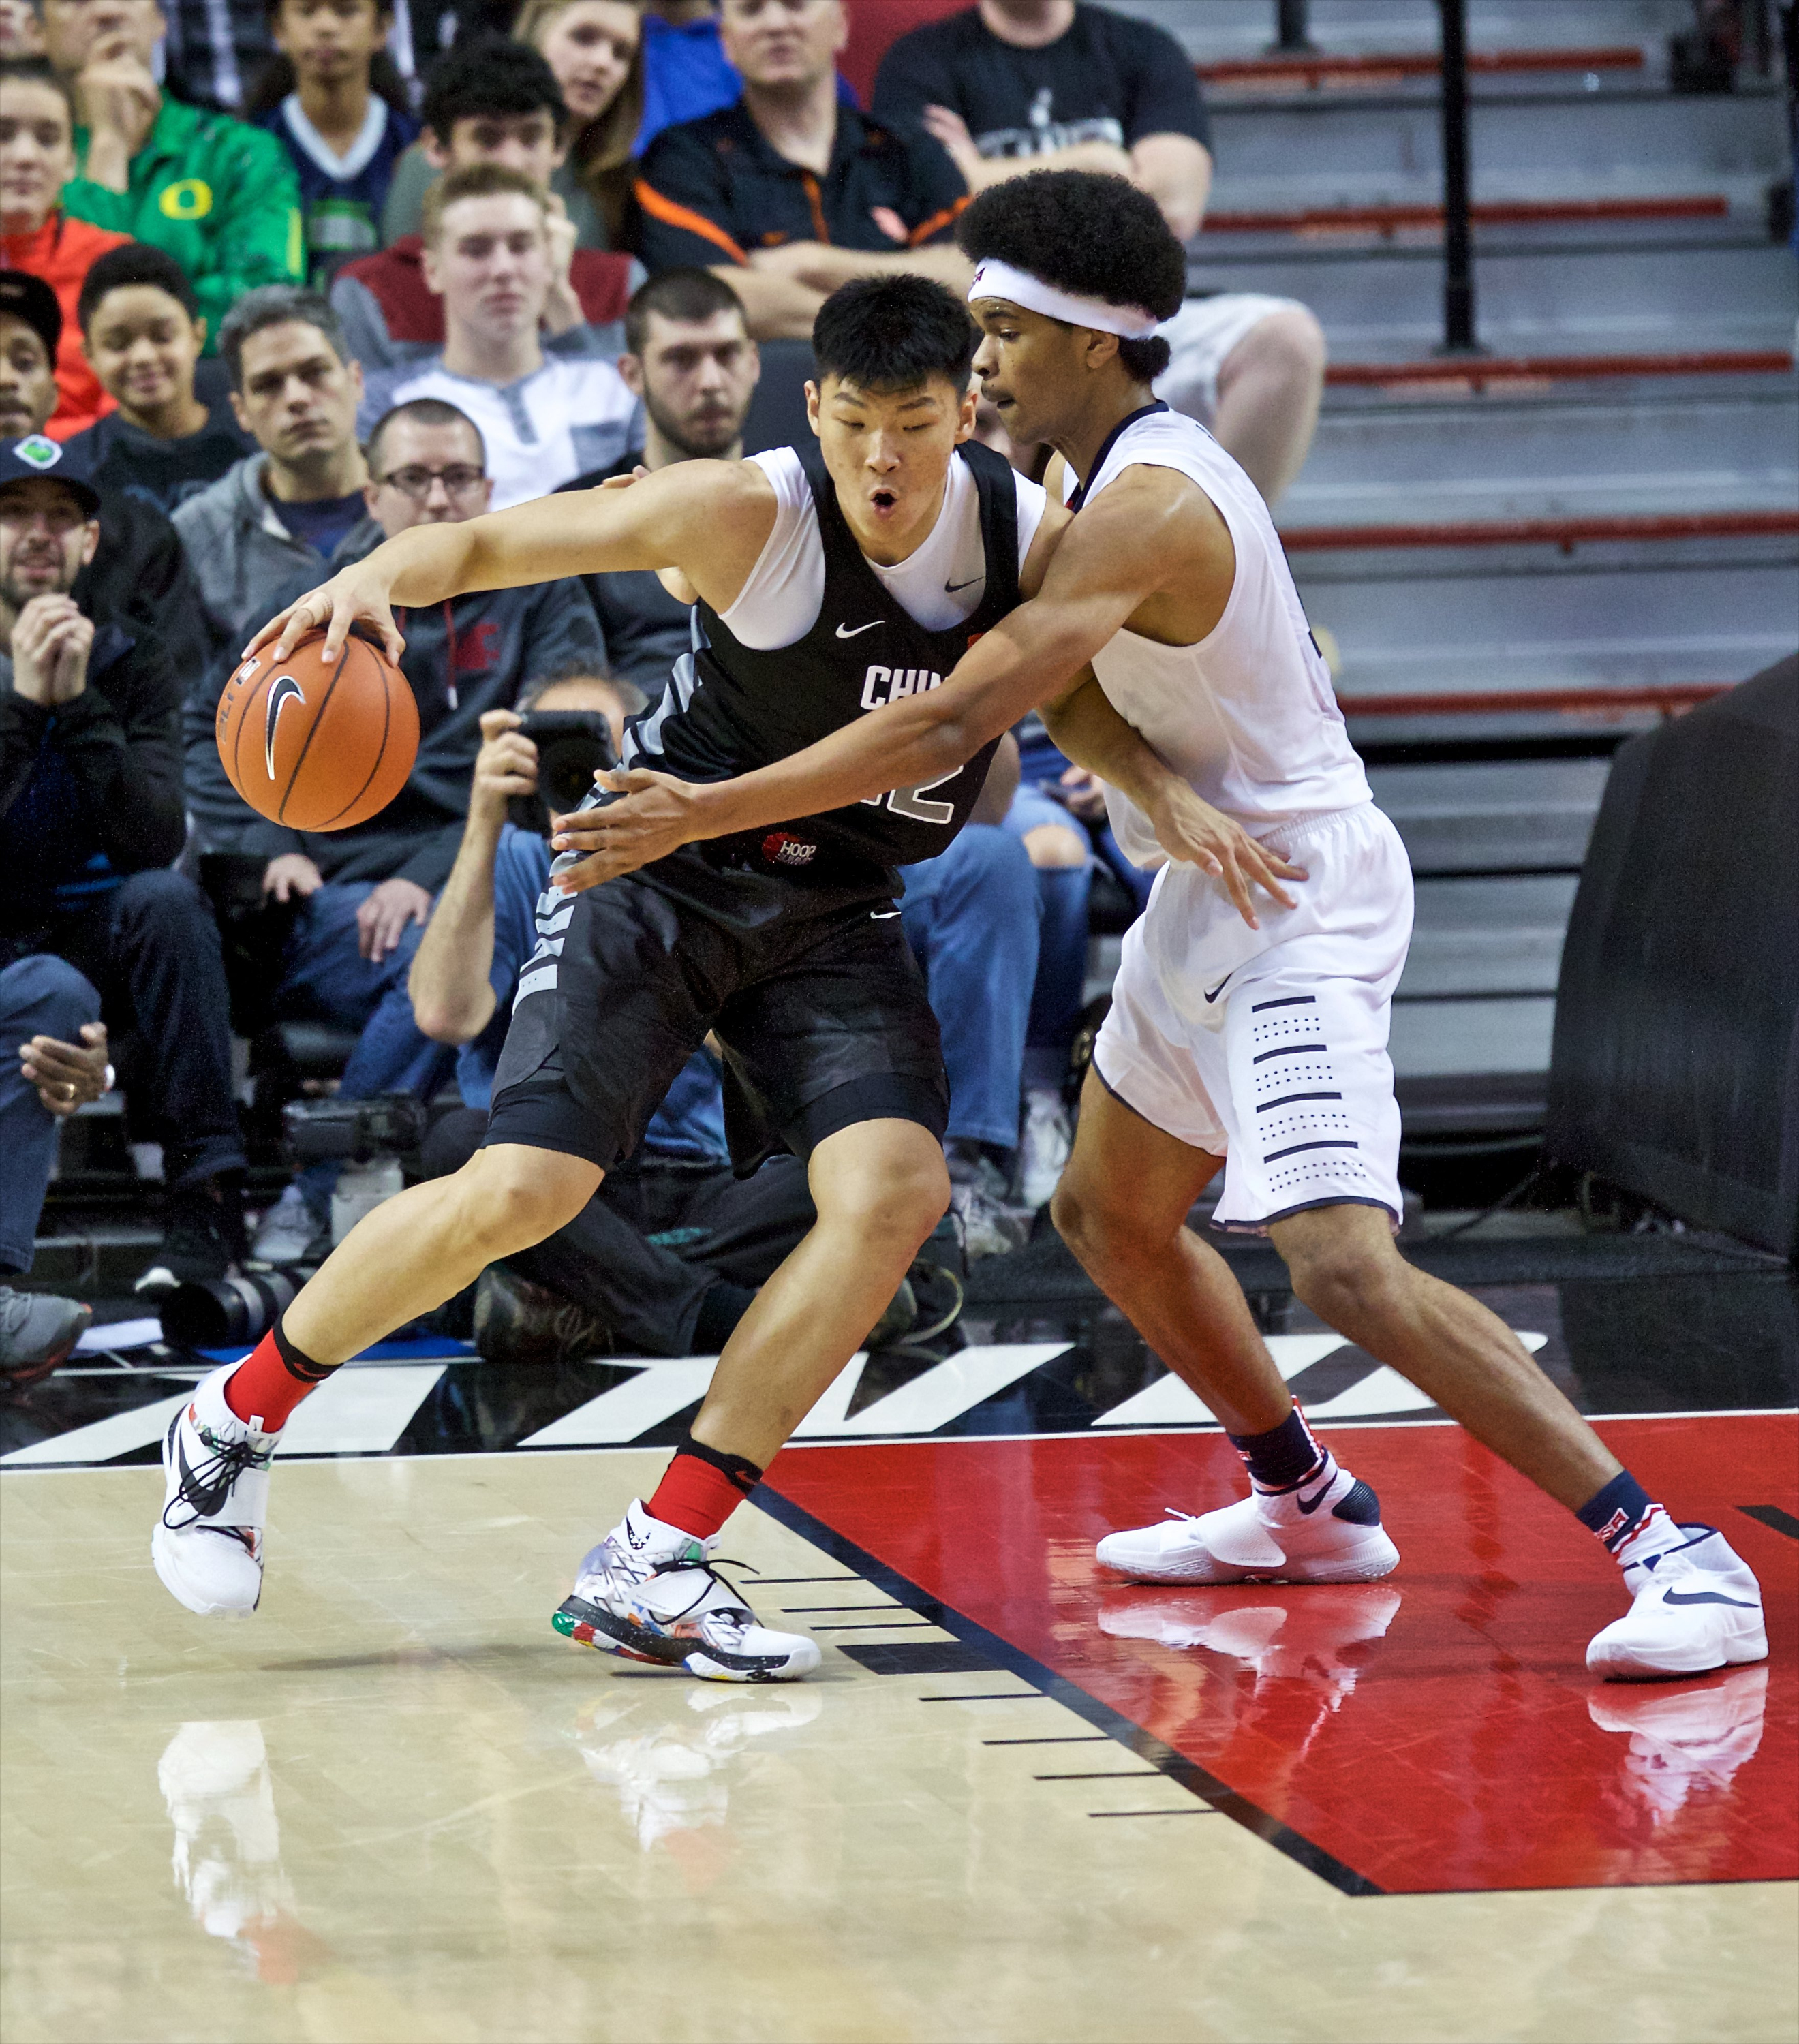 World center Ziming Fan, left, posts up against USA's Jarrett Allen, right, during the first half of the Nike Hoop Summit preps basketball game. -- Photo by Craig Mitchelldyer-USA TODAY Sports Images, Gannett ORG XMIT: US 134692 Nike hoops 4/9/2016 [Via MerlinFTP Drop]